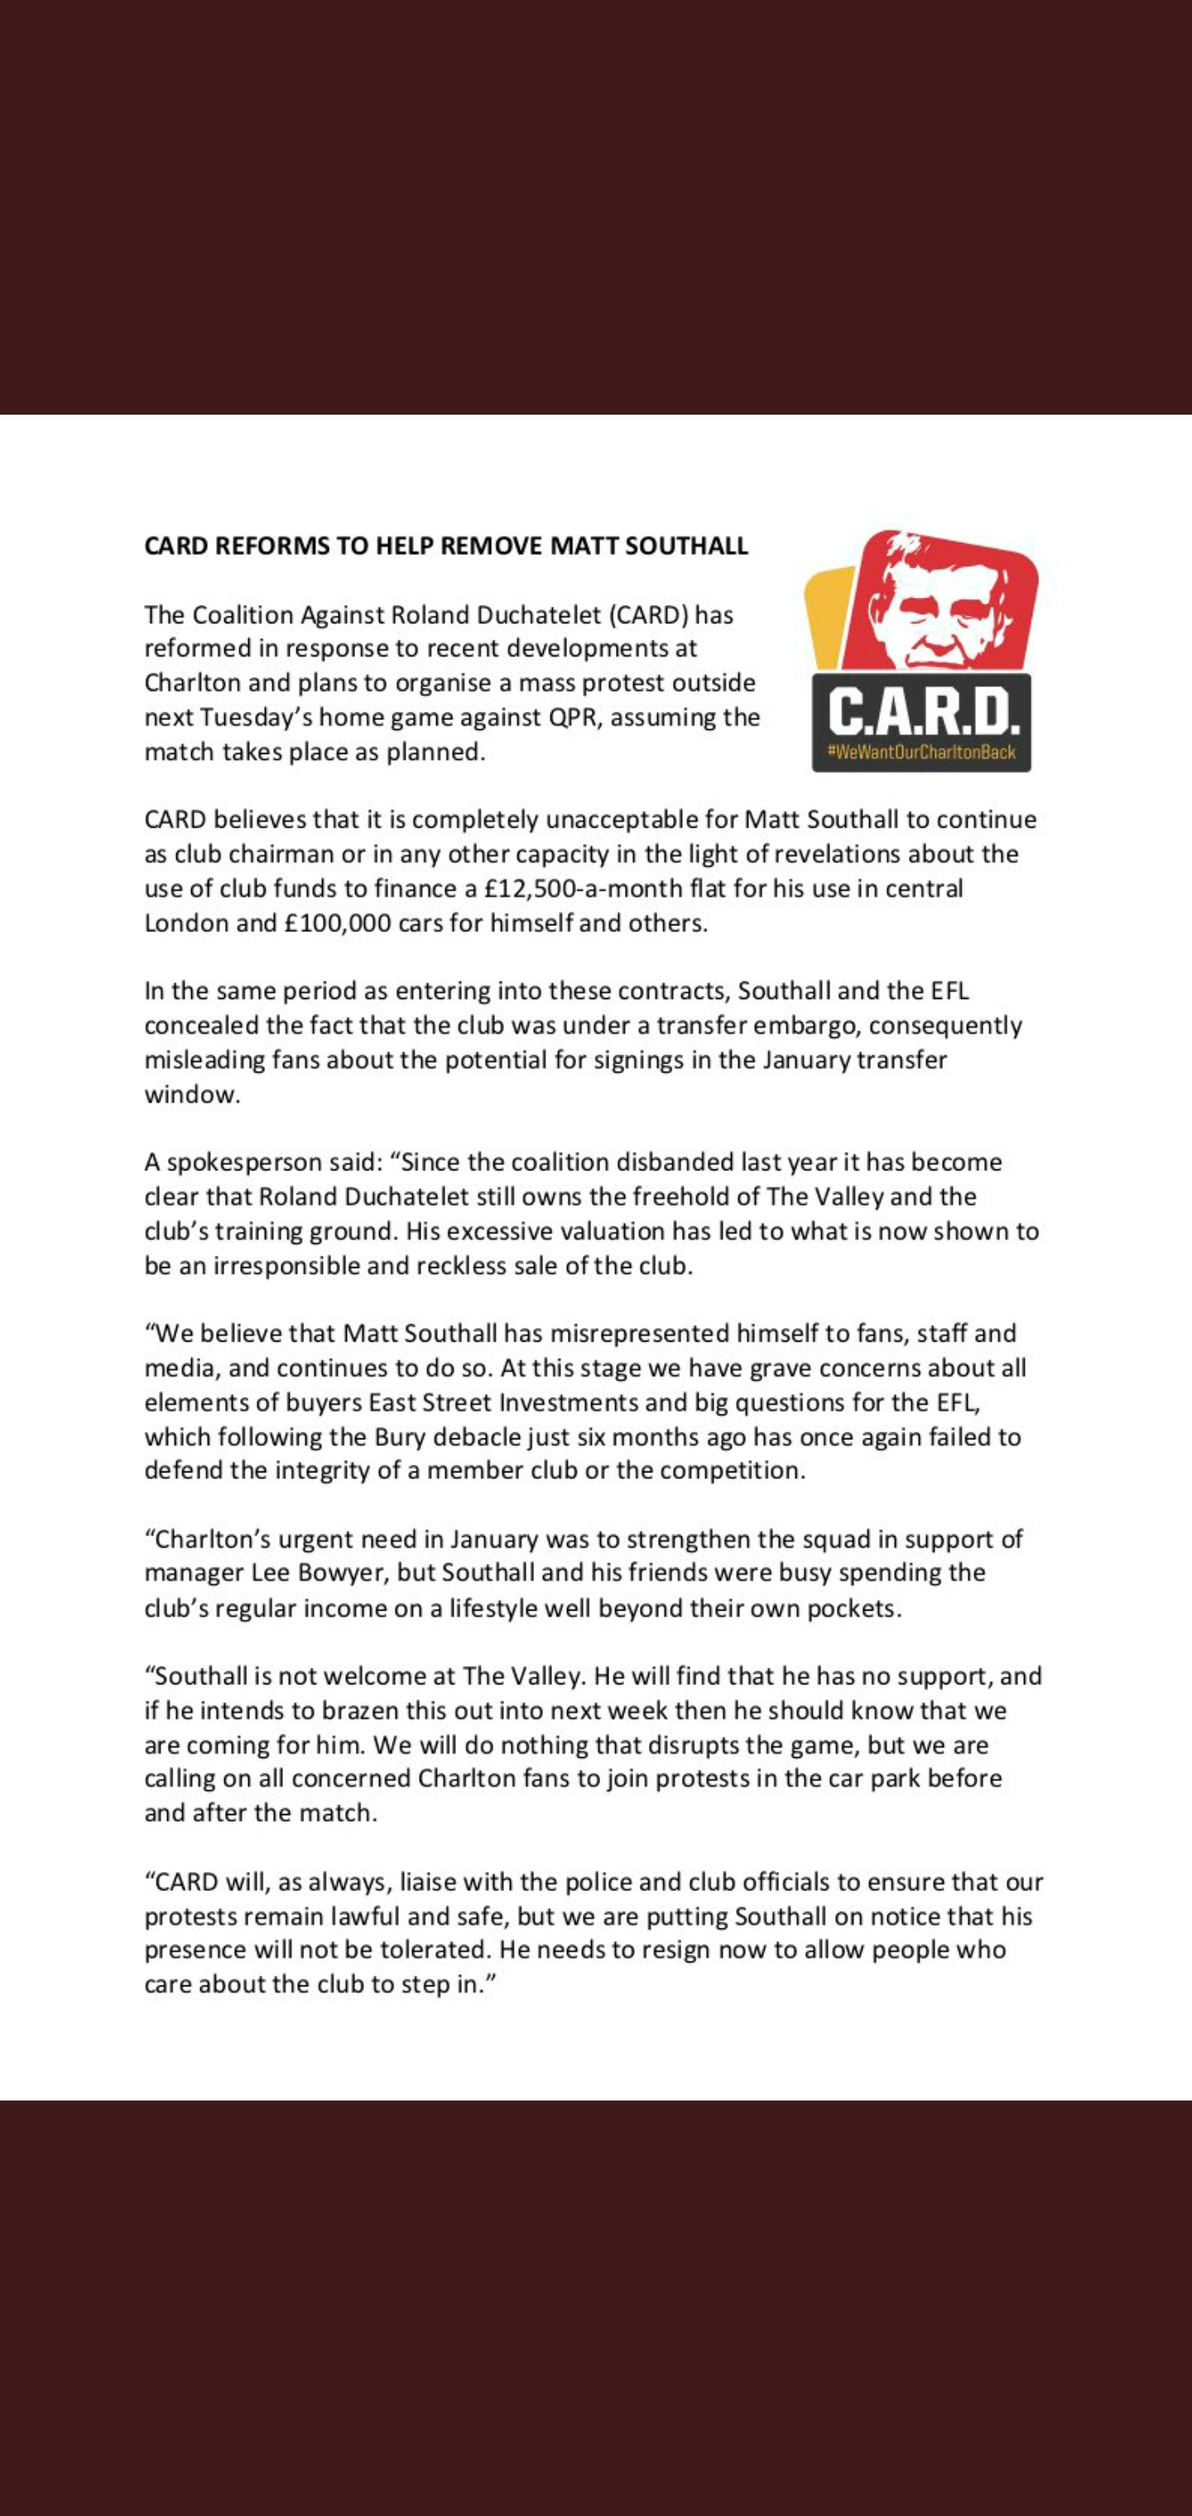 CARD statement